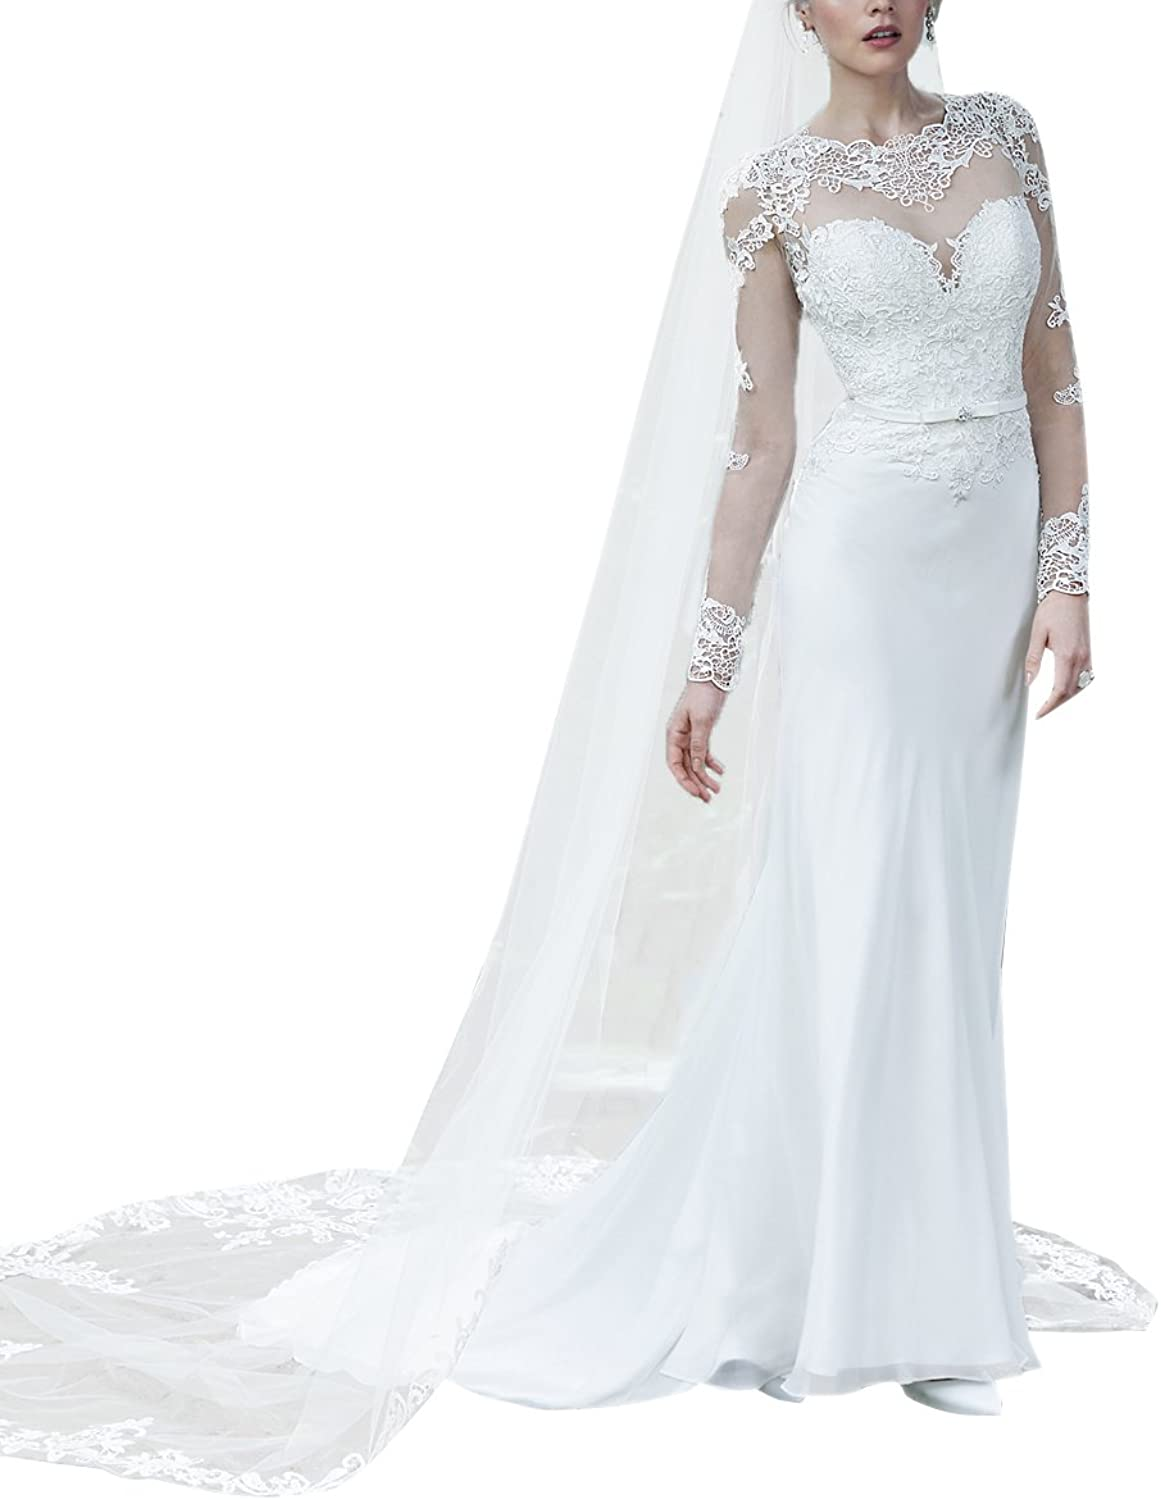 SecretCastle Women's Shealth Lace Bridal Gown Wedding Dresses with Fulllength Illusion Sleeves